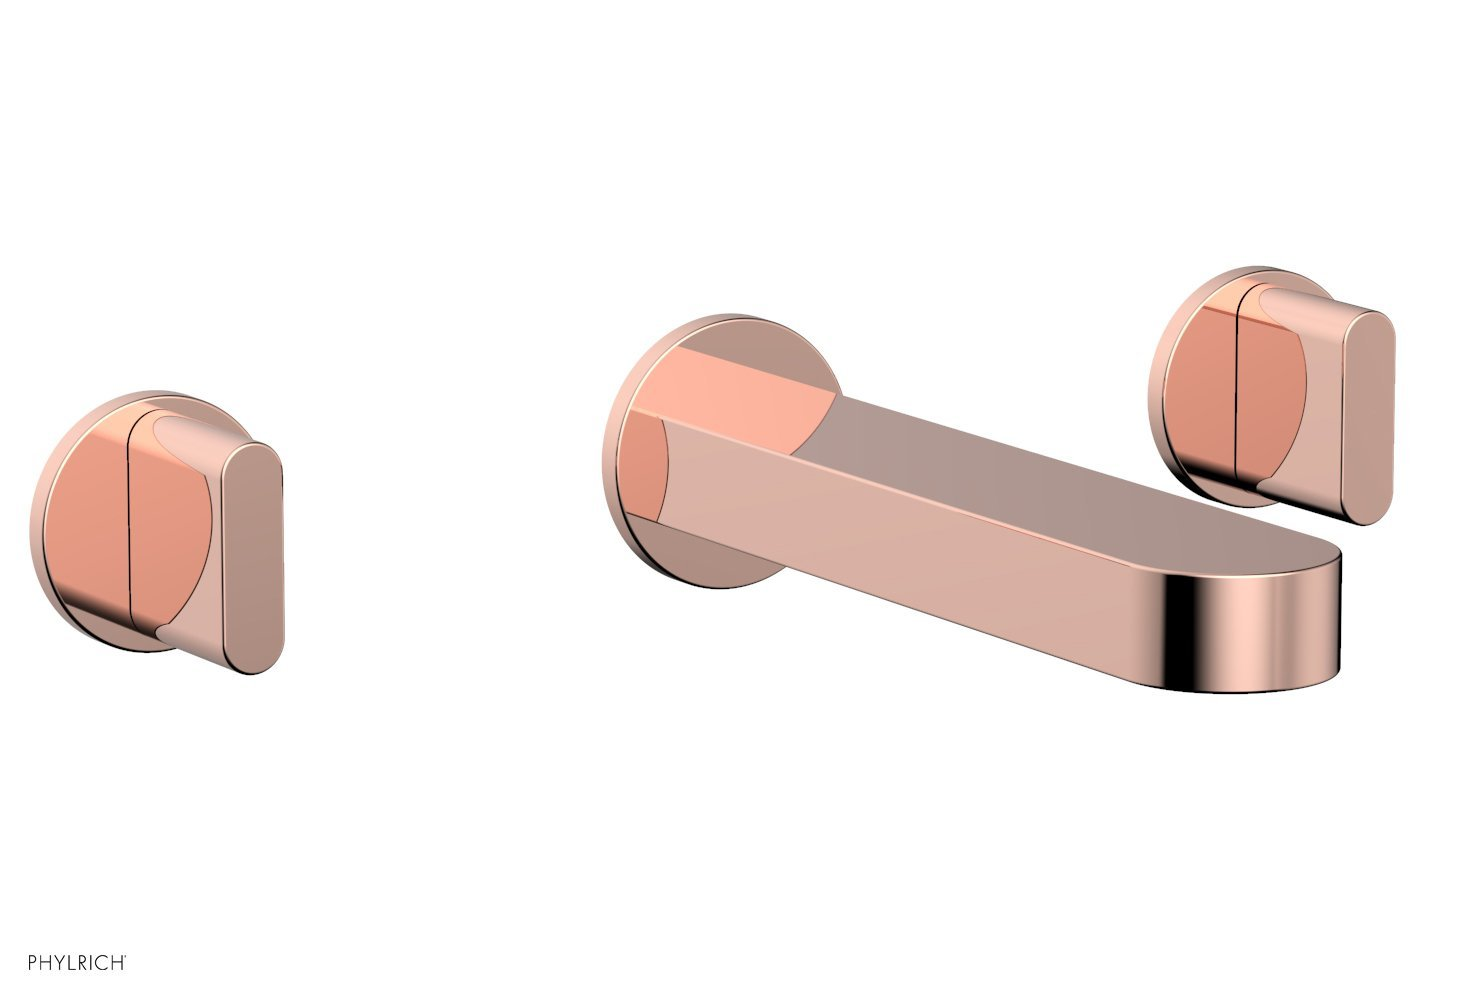 Phylrich 183-56-005 ROND Wall Tub Set - Blade Handles - Polished Copper